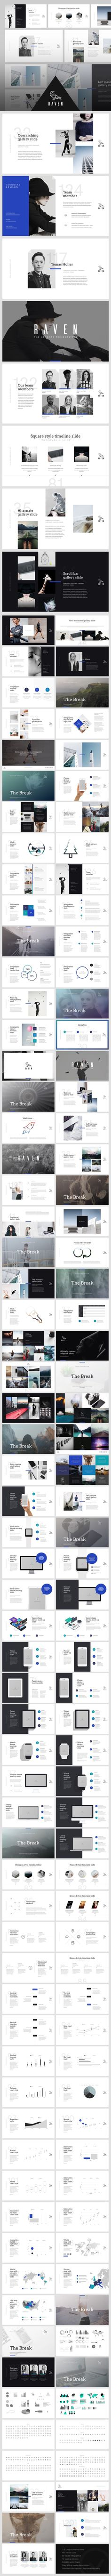 RAVEN Authentic Keynote Presentation Template. Download here: http://graphicriver.net/item/raven-authentic-keynote-presentation-template/16658313?ref=ksioks